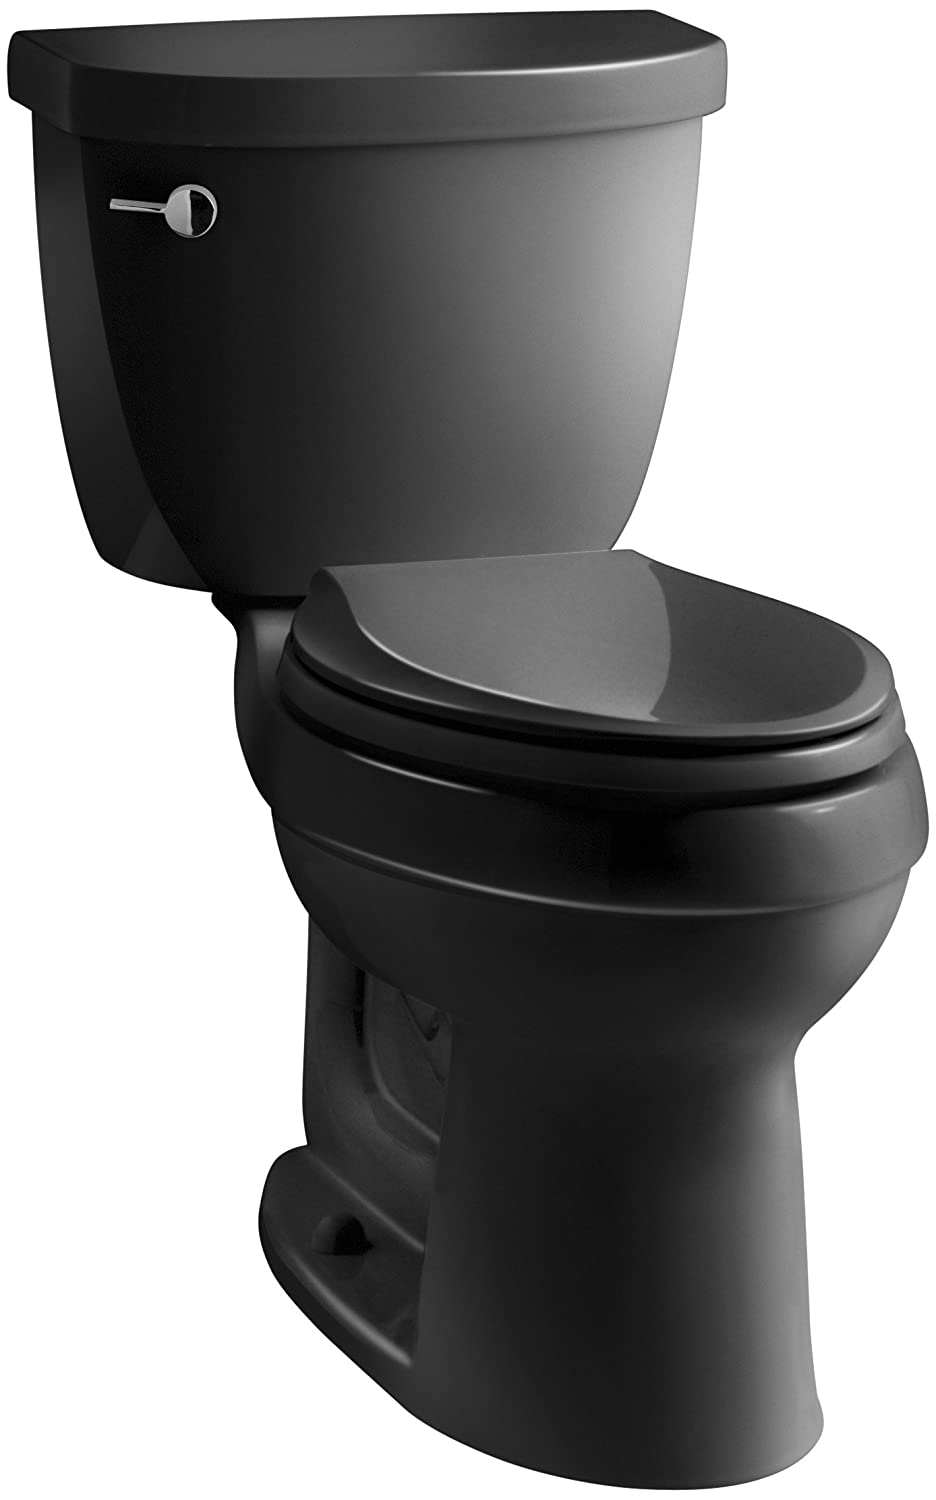 White Toilet With Black Seat. KOHLER K 3589 7 Cimarron Comfort Height Elongated 1 6 gpf Toilet with  AquaPiston Technology Less Seat Black Two Piece Toilets Amazon com